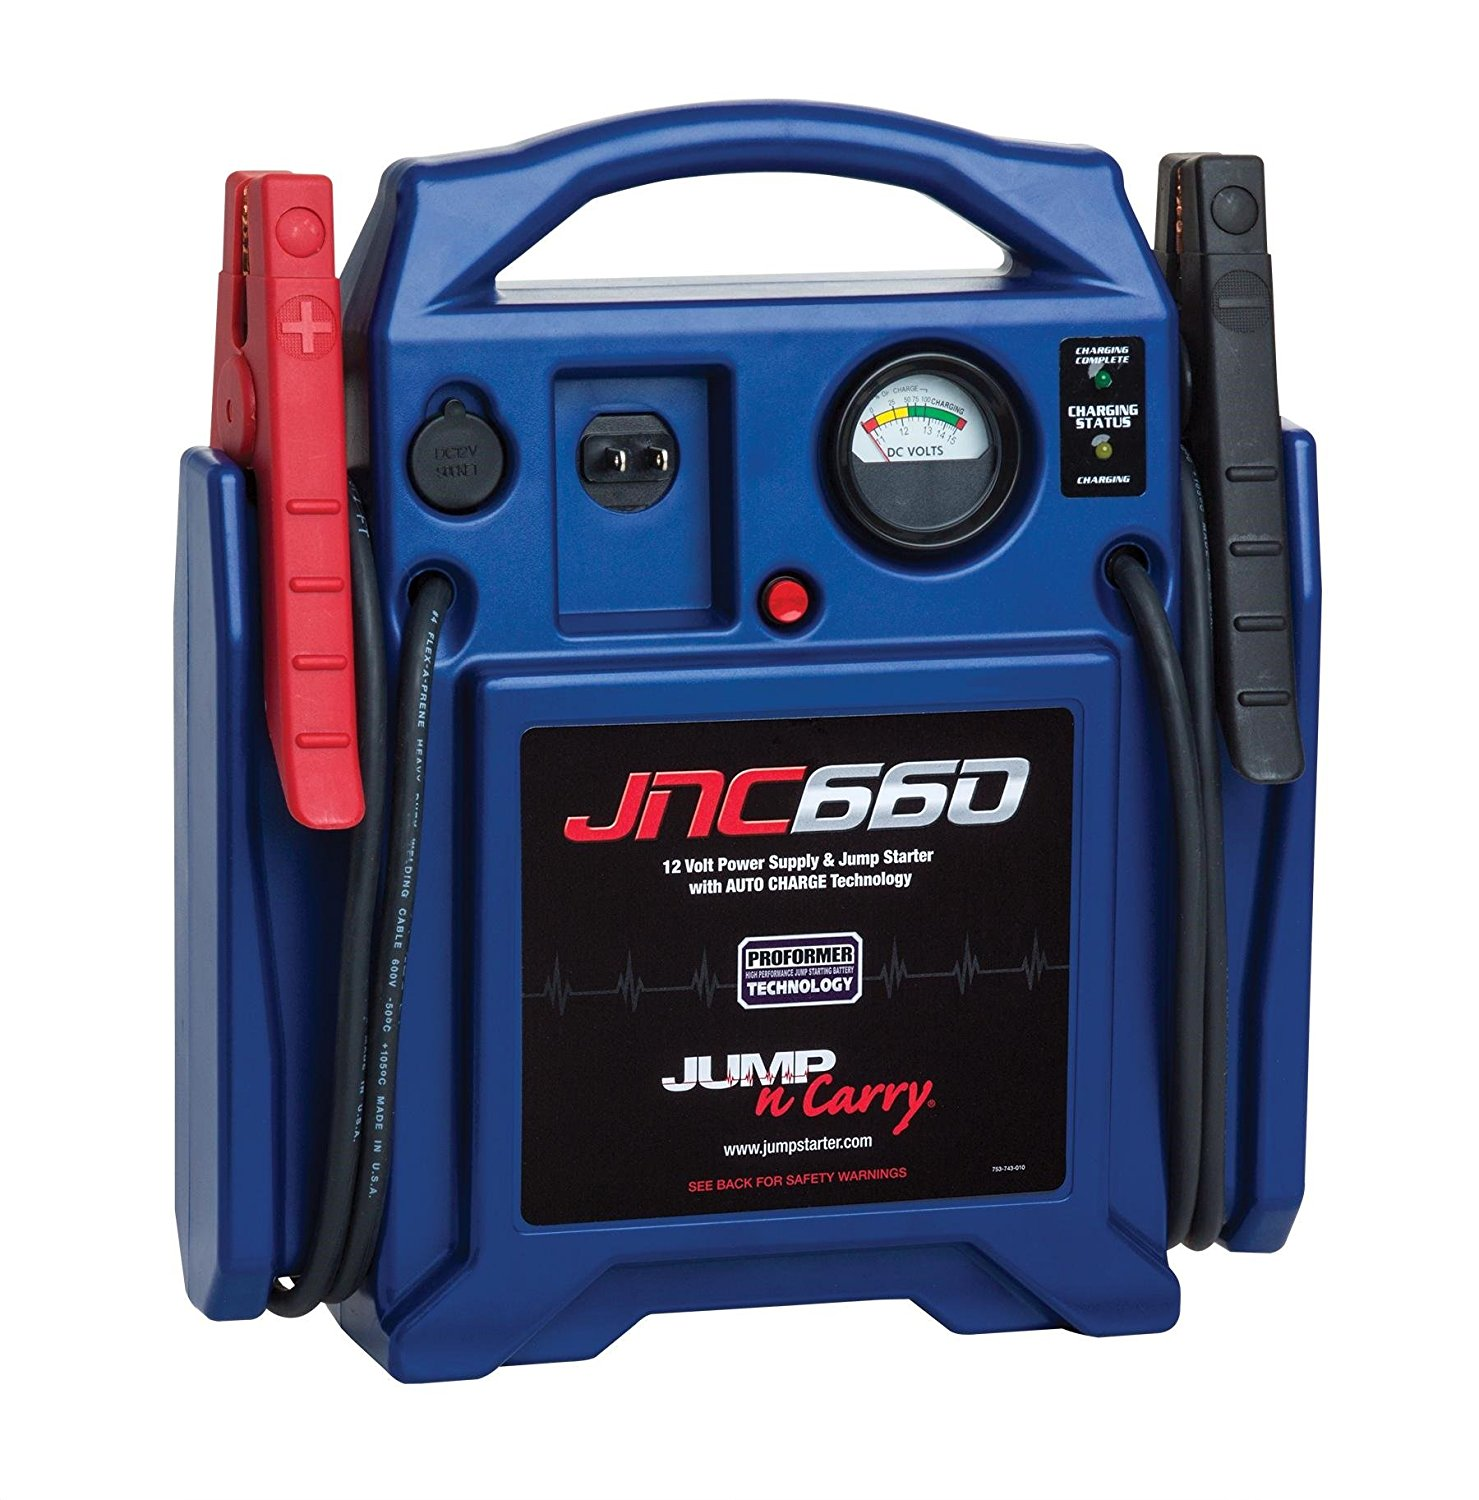 JNC660 Battery Jump Pack-Review